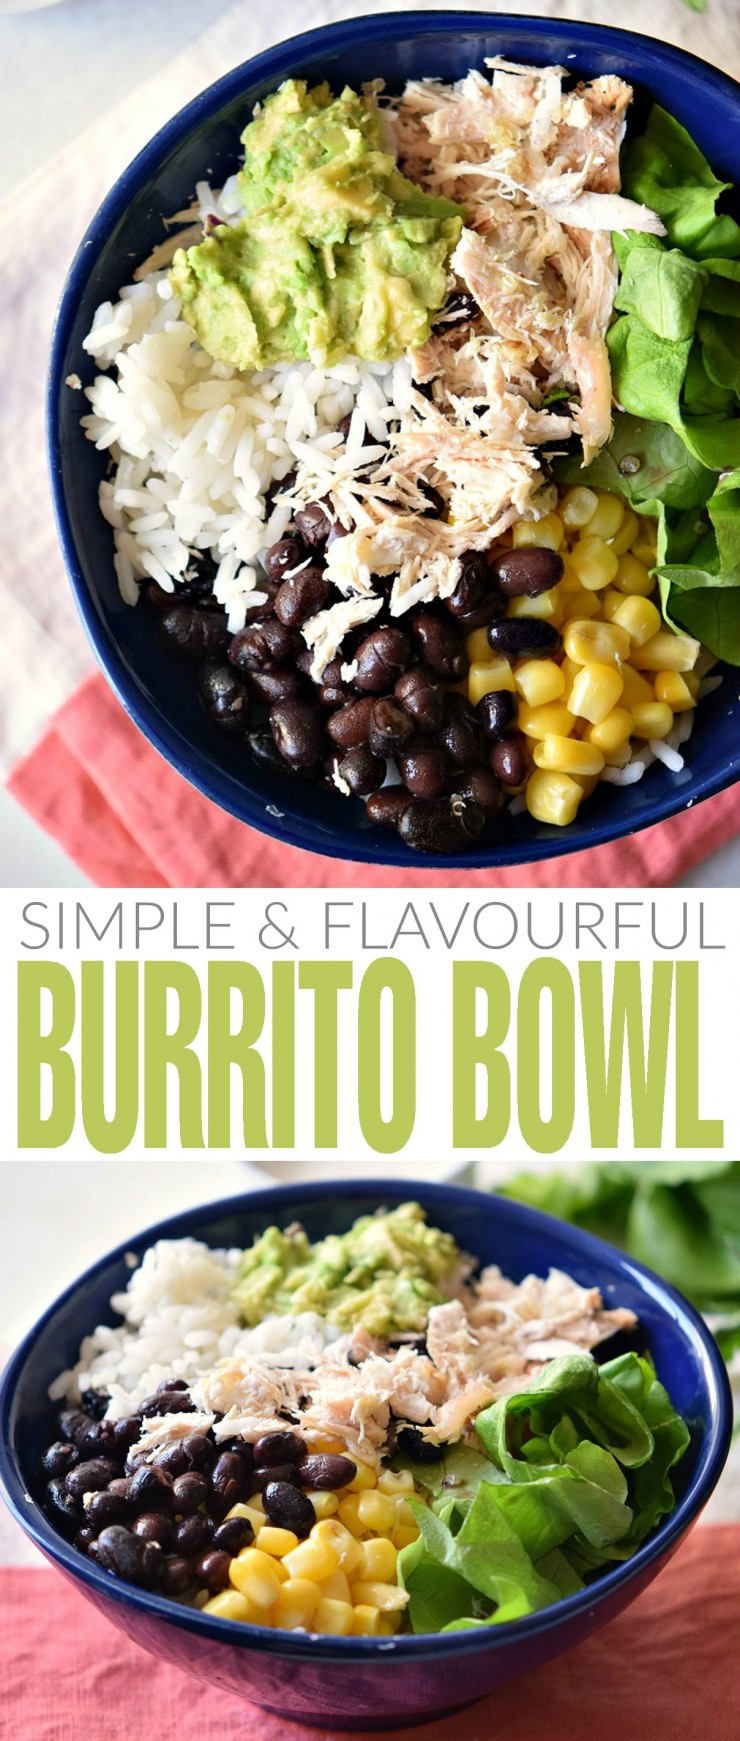 burrito and life Put something in a burrito and it acquires a cool edge, but the results can vary wildly with chefs busting the blueprint, we taste test the latest hipster food fad.